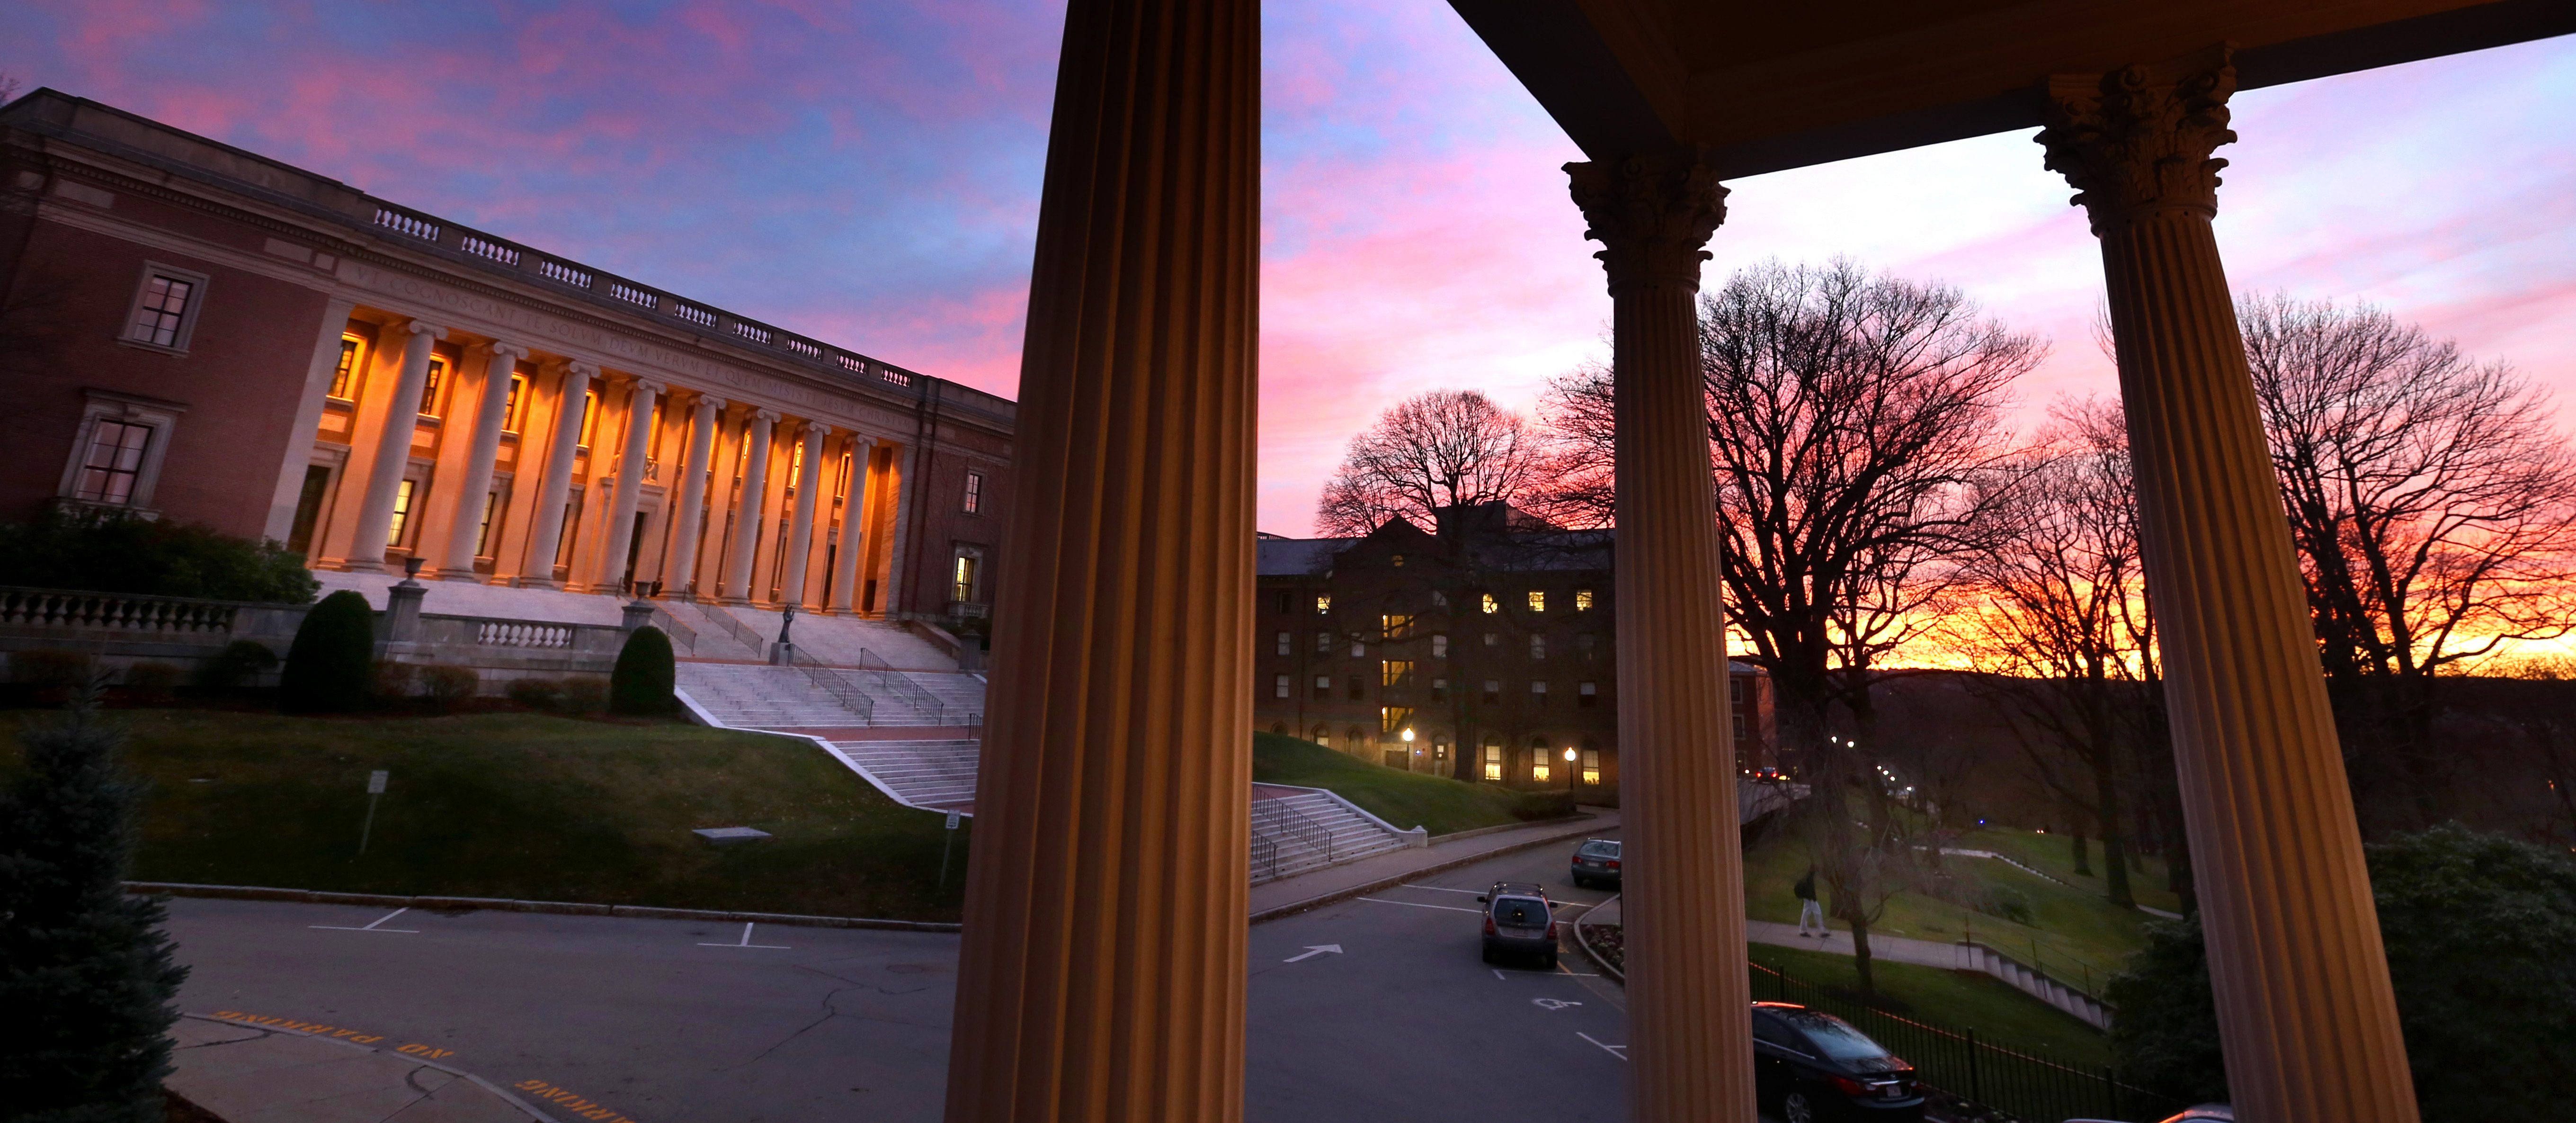 Dinand Library, College of the Holy Cross, at sunset